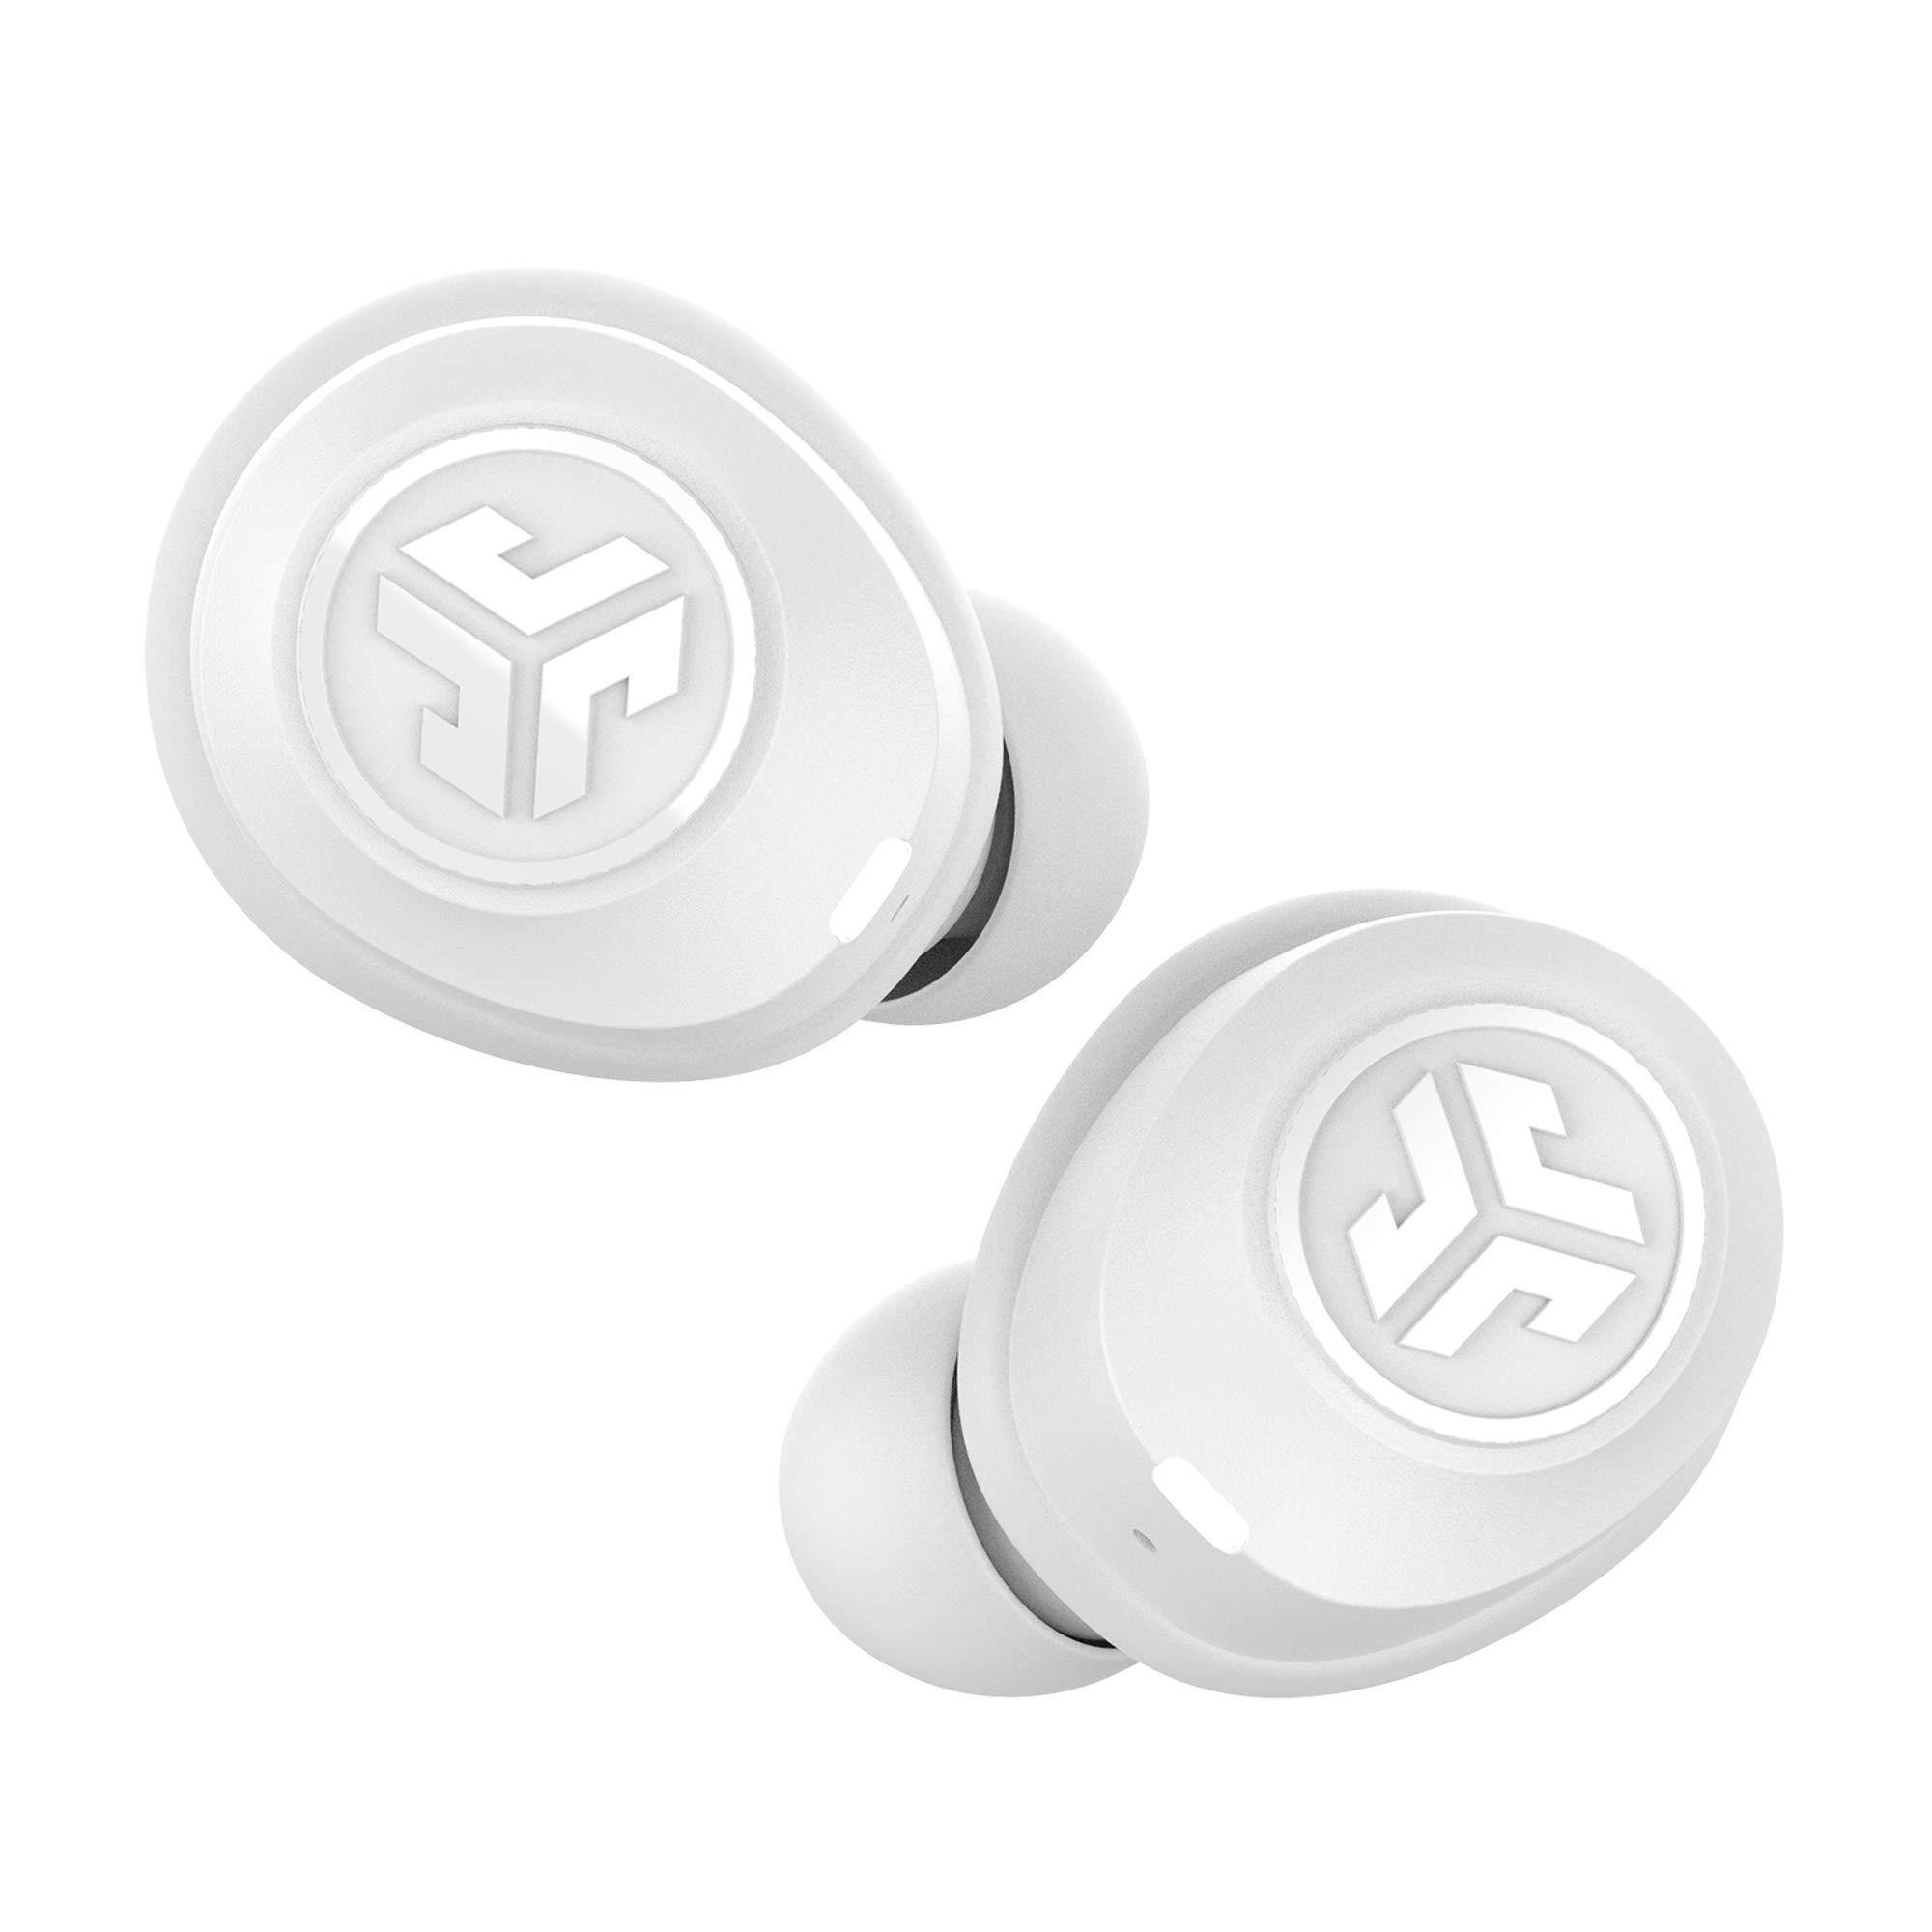 Auriculares Earbuds Inalam. JLAB White  BD923